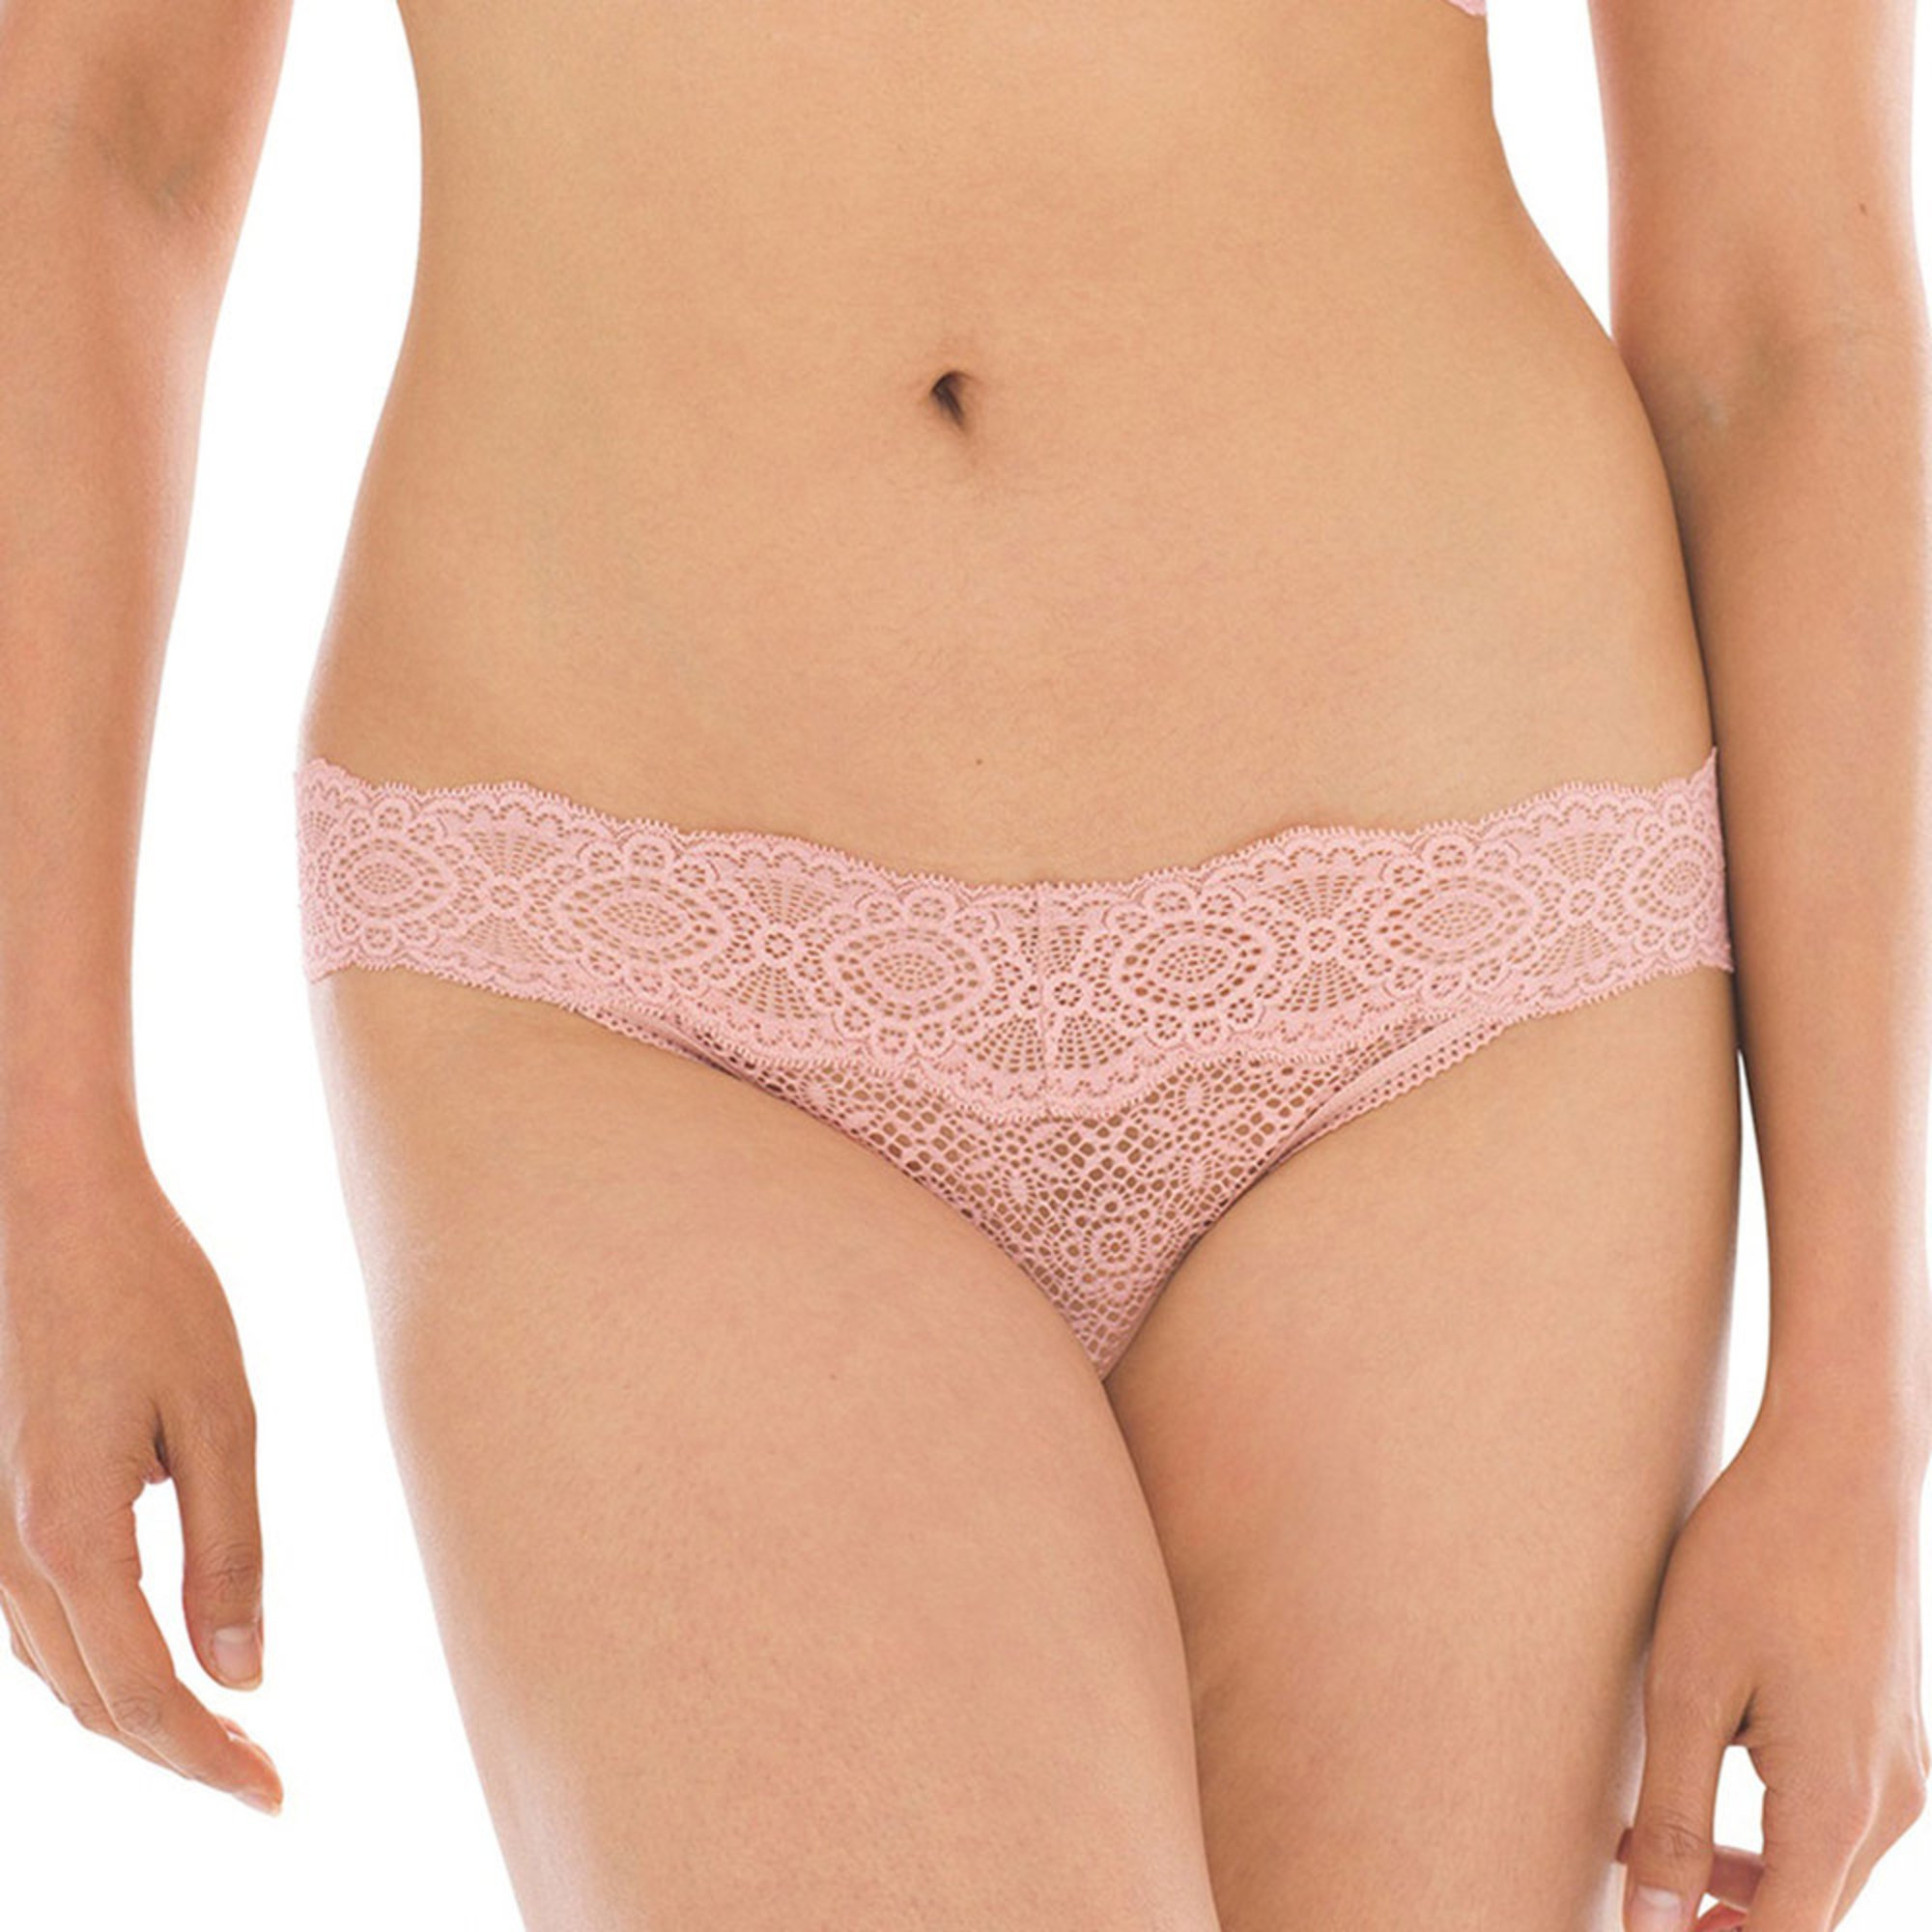 5b2e83f3a135 Soma Women's Embraceable All-over Lace Geo Thong   Thong Panties ...